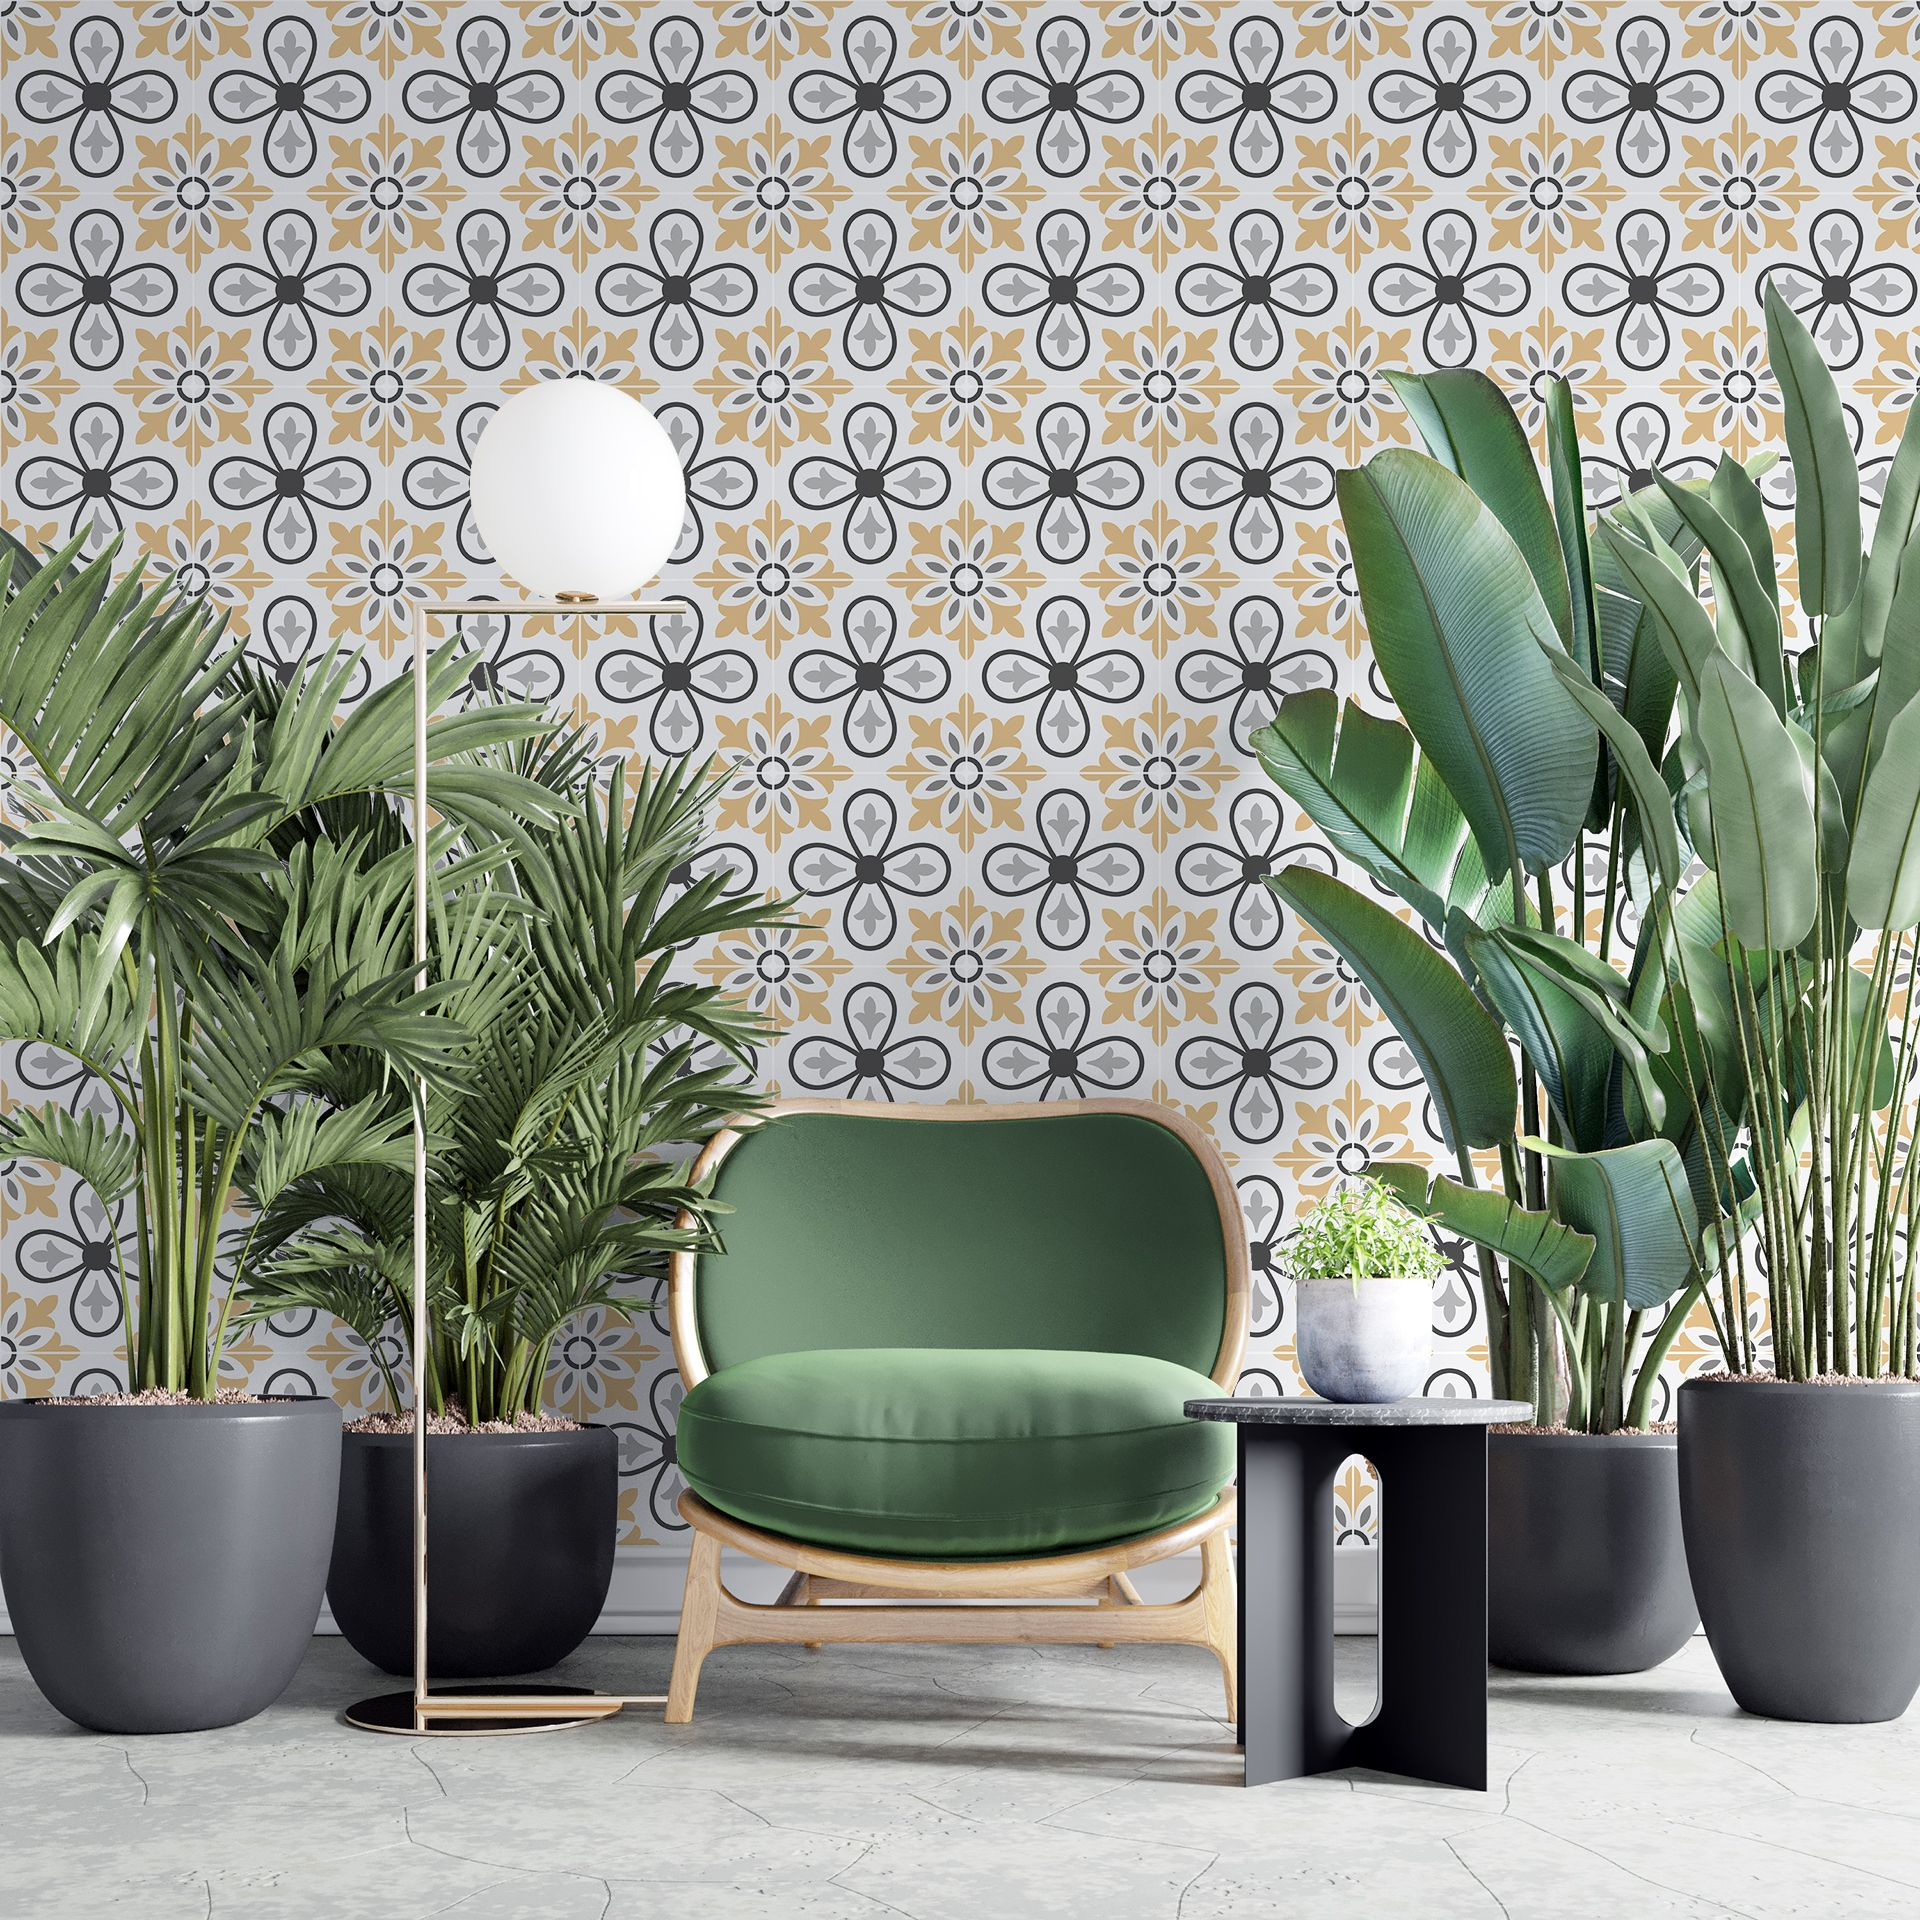 Get these non-toxic, Peel & Stick, Handmade Removable Wallpaper. these long lasting WallaWall Wallpaper, it will give the rooms in your home a new whole new life. You can get these by clicking the photo.💯 #wallpaper #wallpapers #interiordesign #d #wallpapermurah #wallpaperdinding #homedecor #art #design #wallpapersticker #interior #love #photography #wallpaperdecor #wallsticker #like #anime #walldecor #dekorasirumah #aesthetic #instagram #follow #decor #wallcovering #wallpaperjakarta #nature #